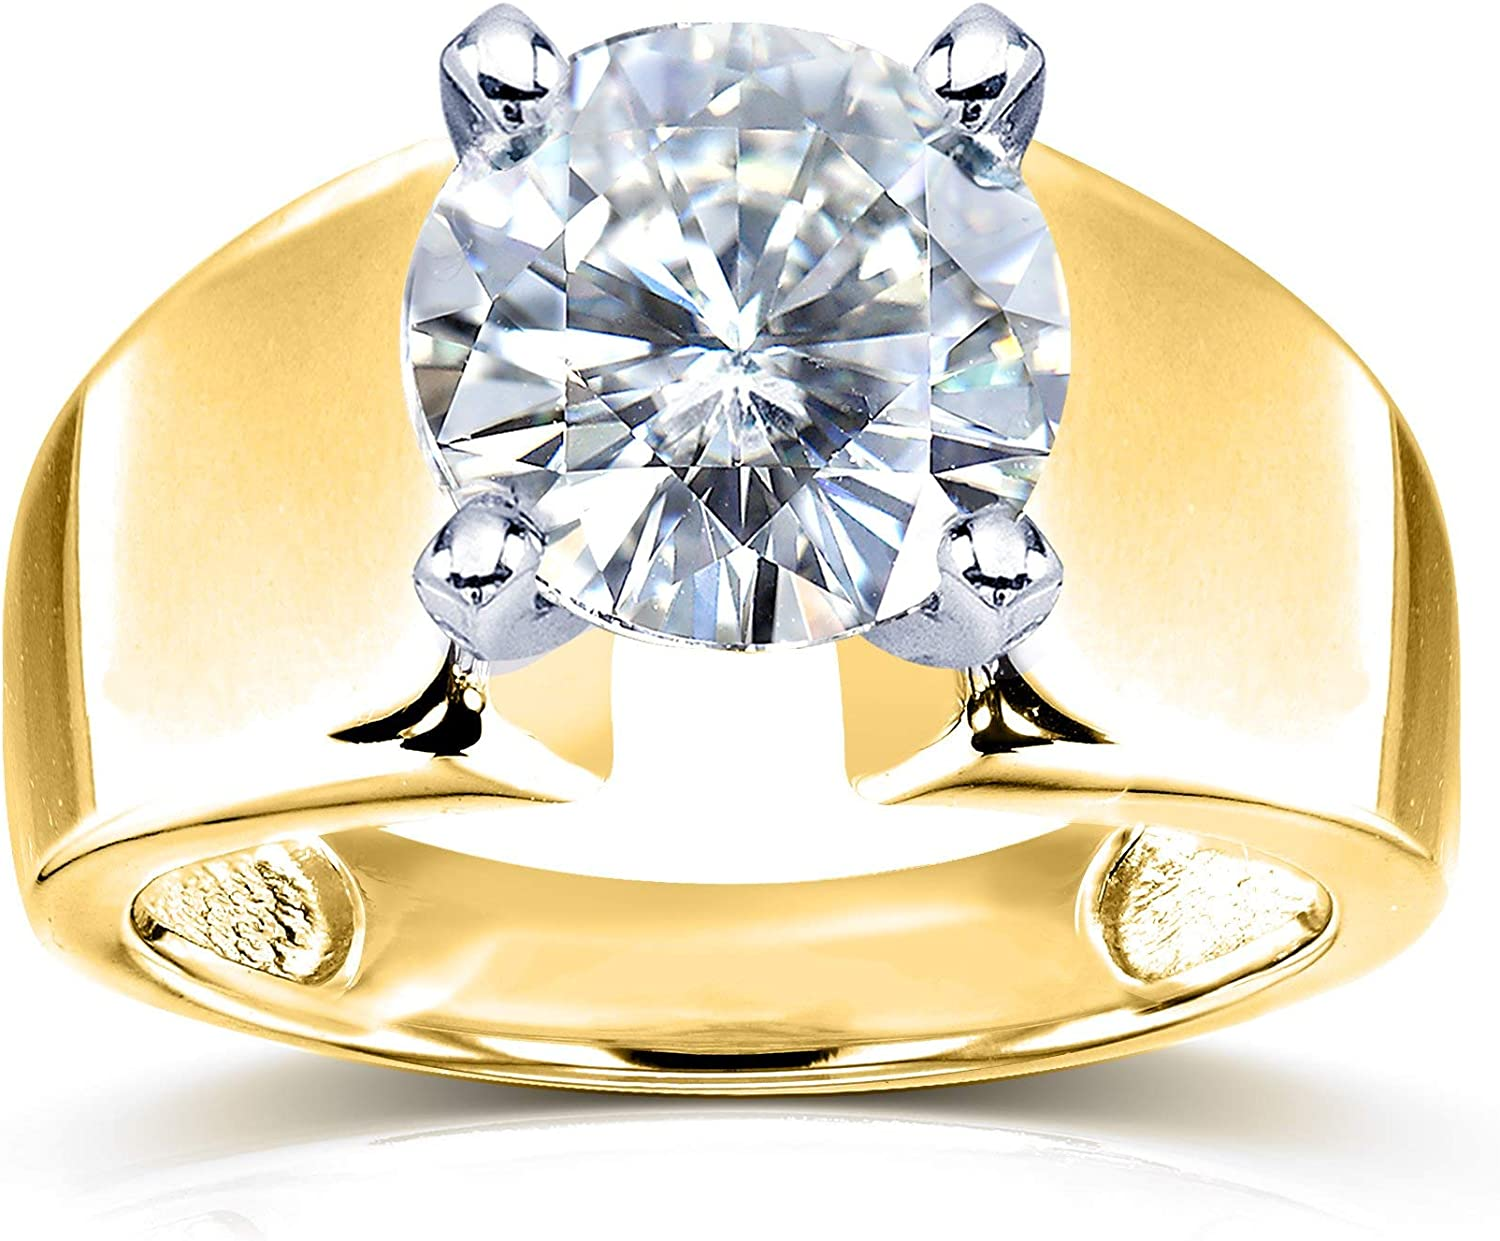 FG//VS Kobelli Wide Shank Round Brilliant Moissanite Solitaire Engagement Ring 3 Carat 14k Yellow Gold